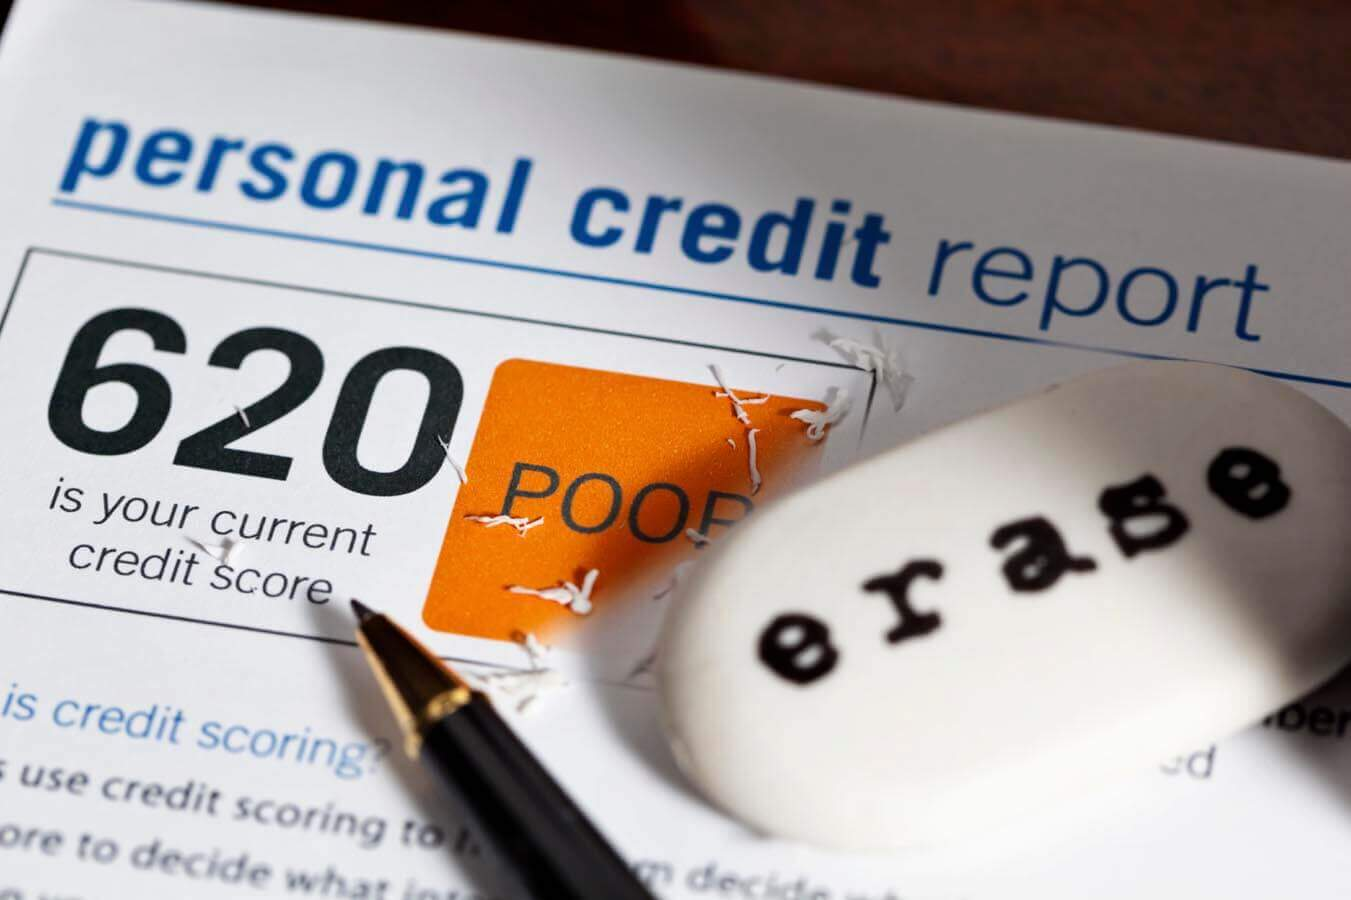 Learn how to repair your credit, which can improve your score